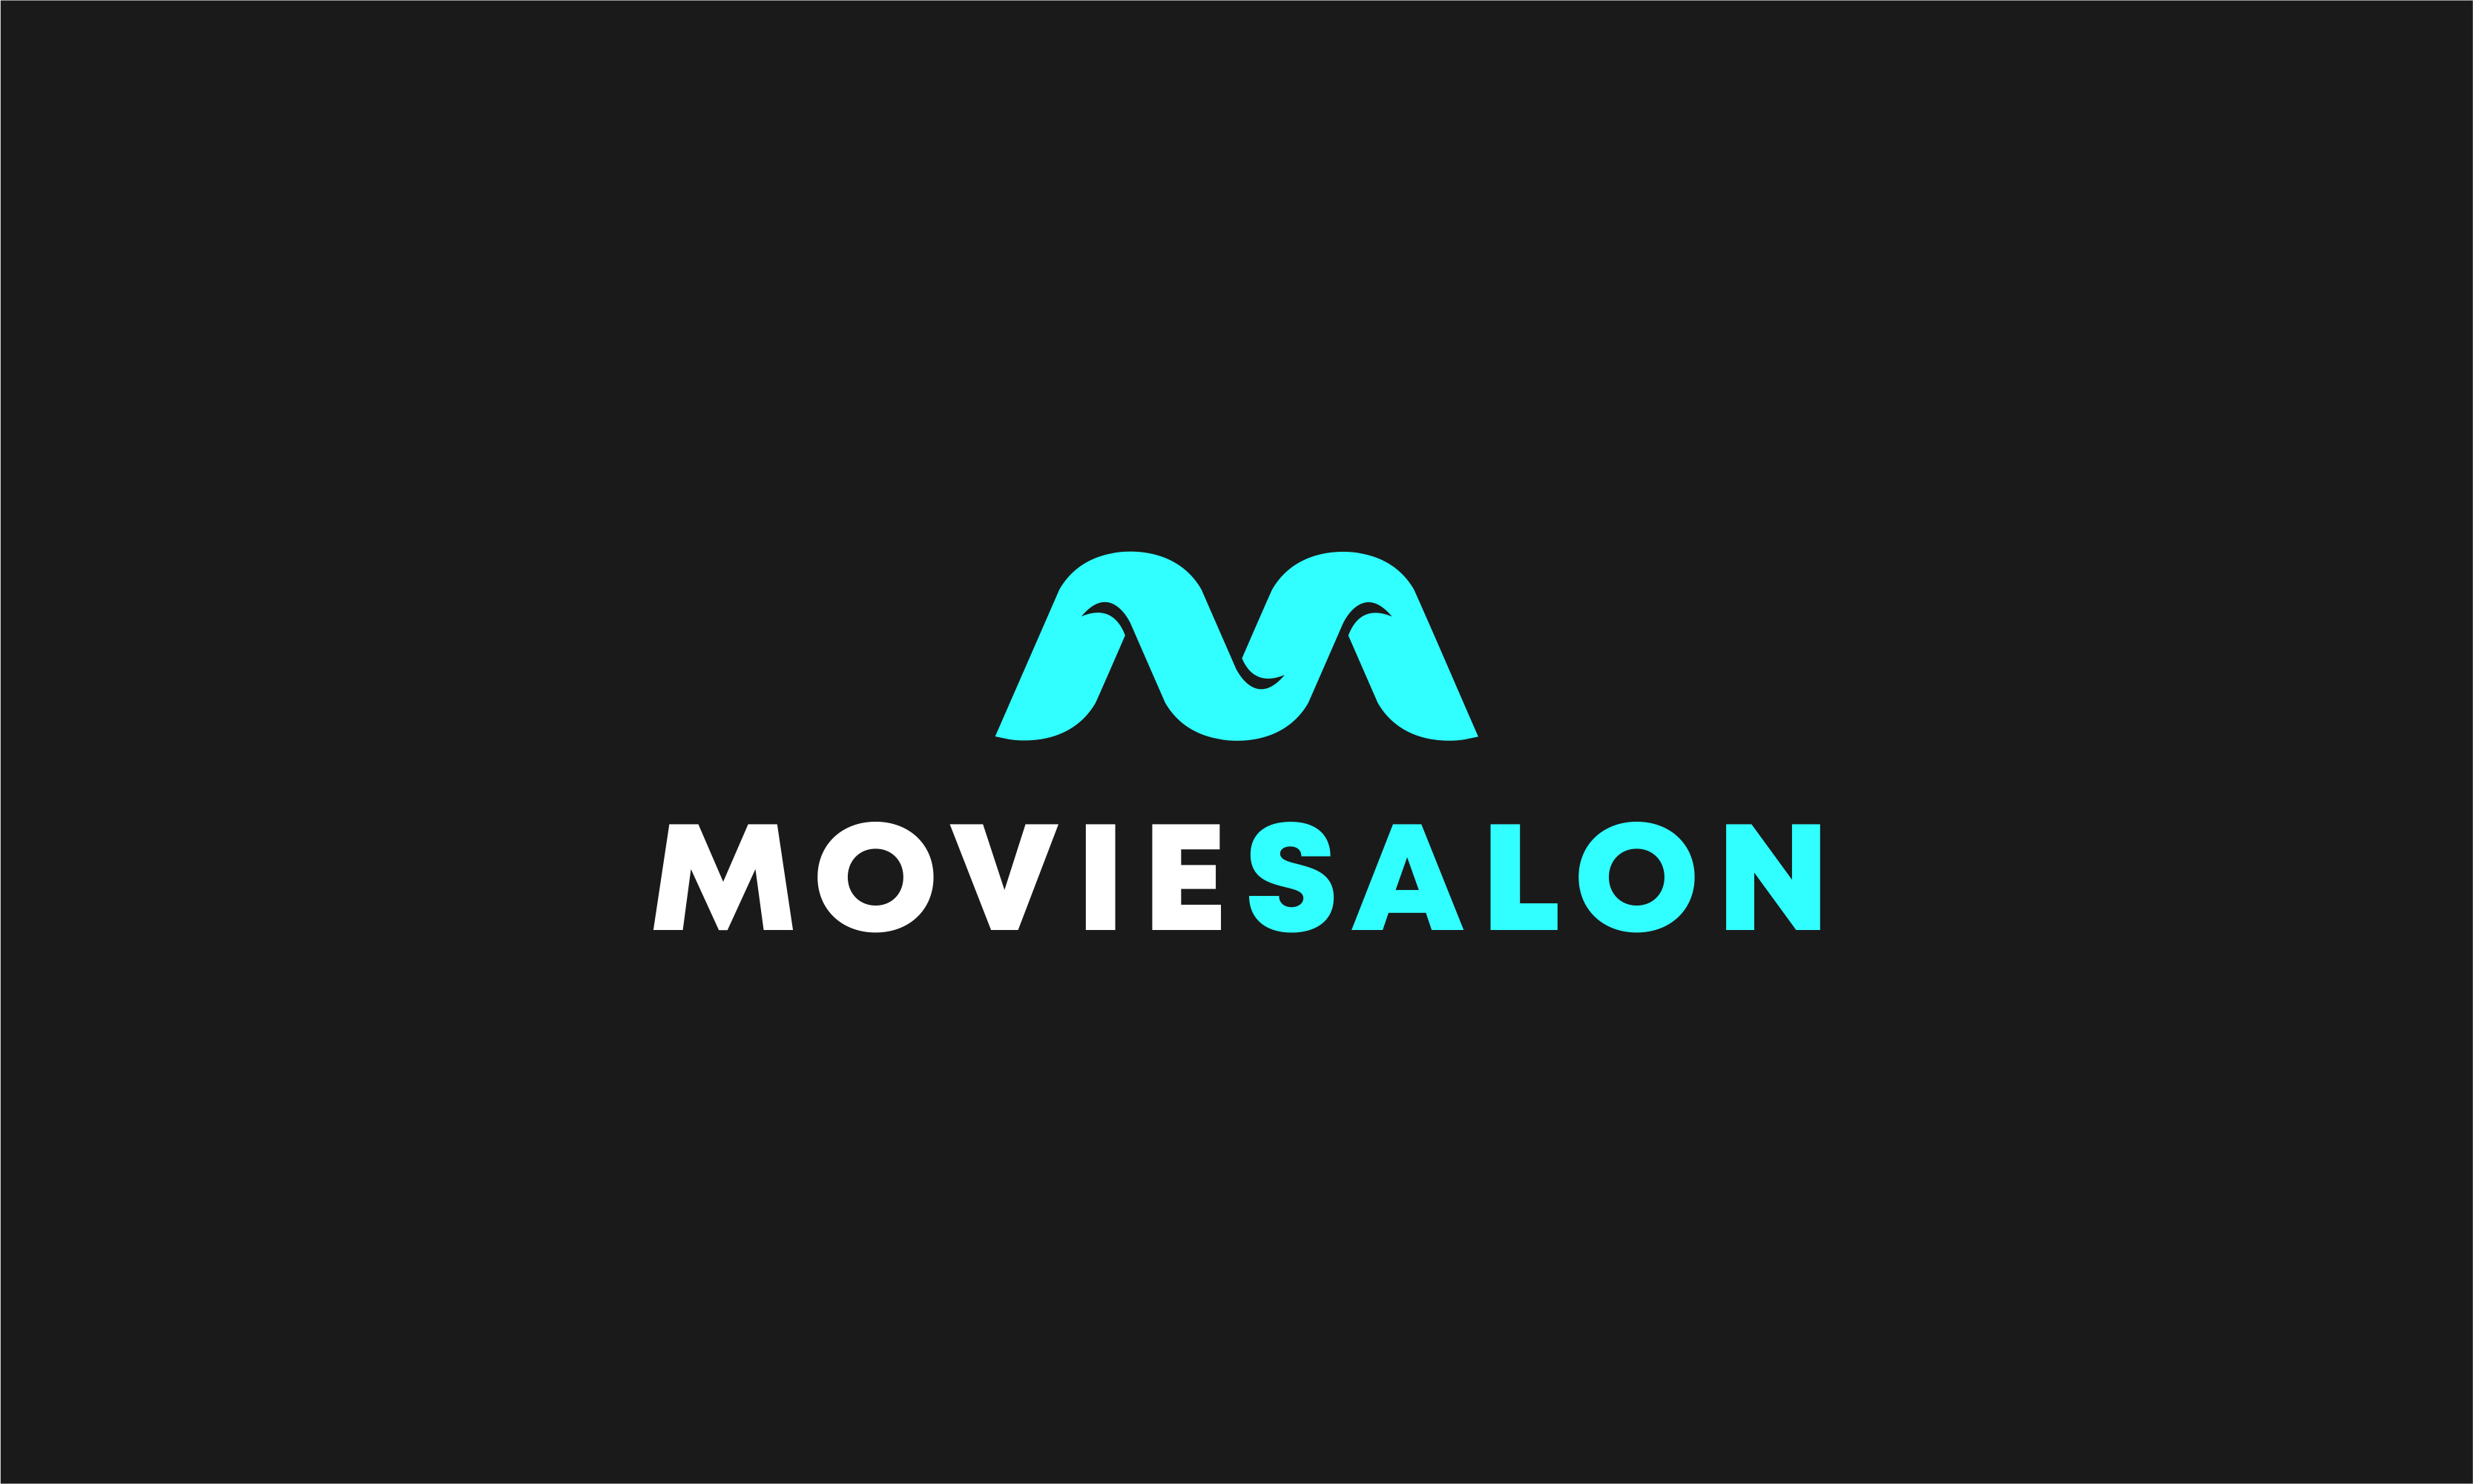 Moviesalon